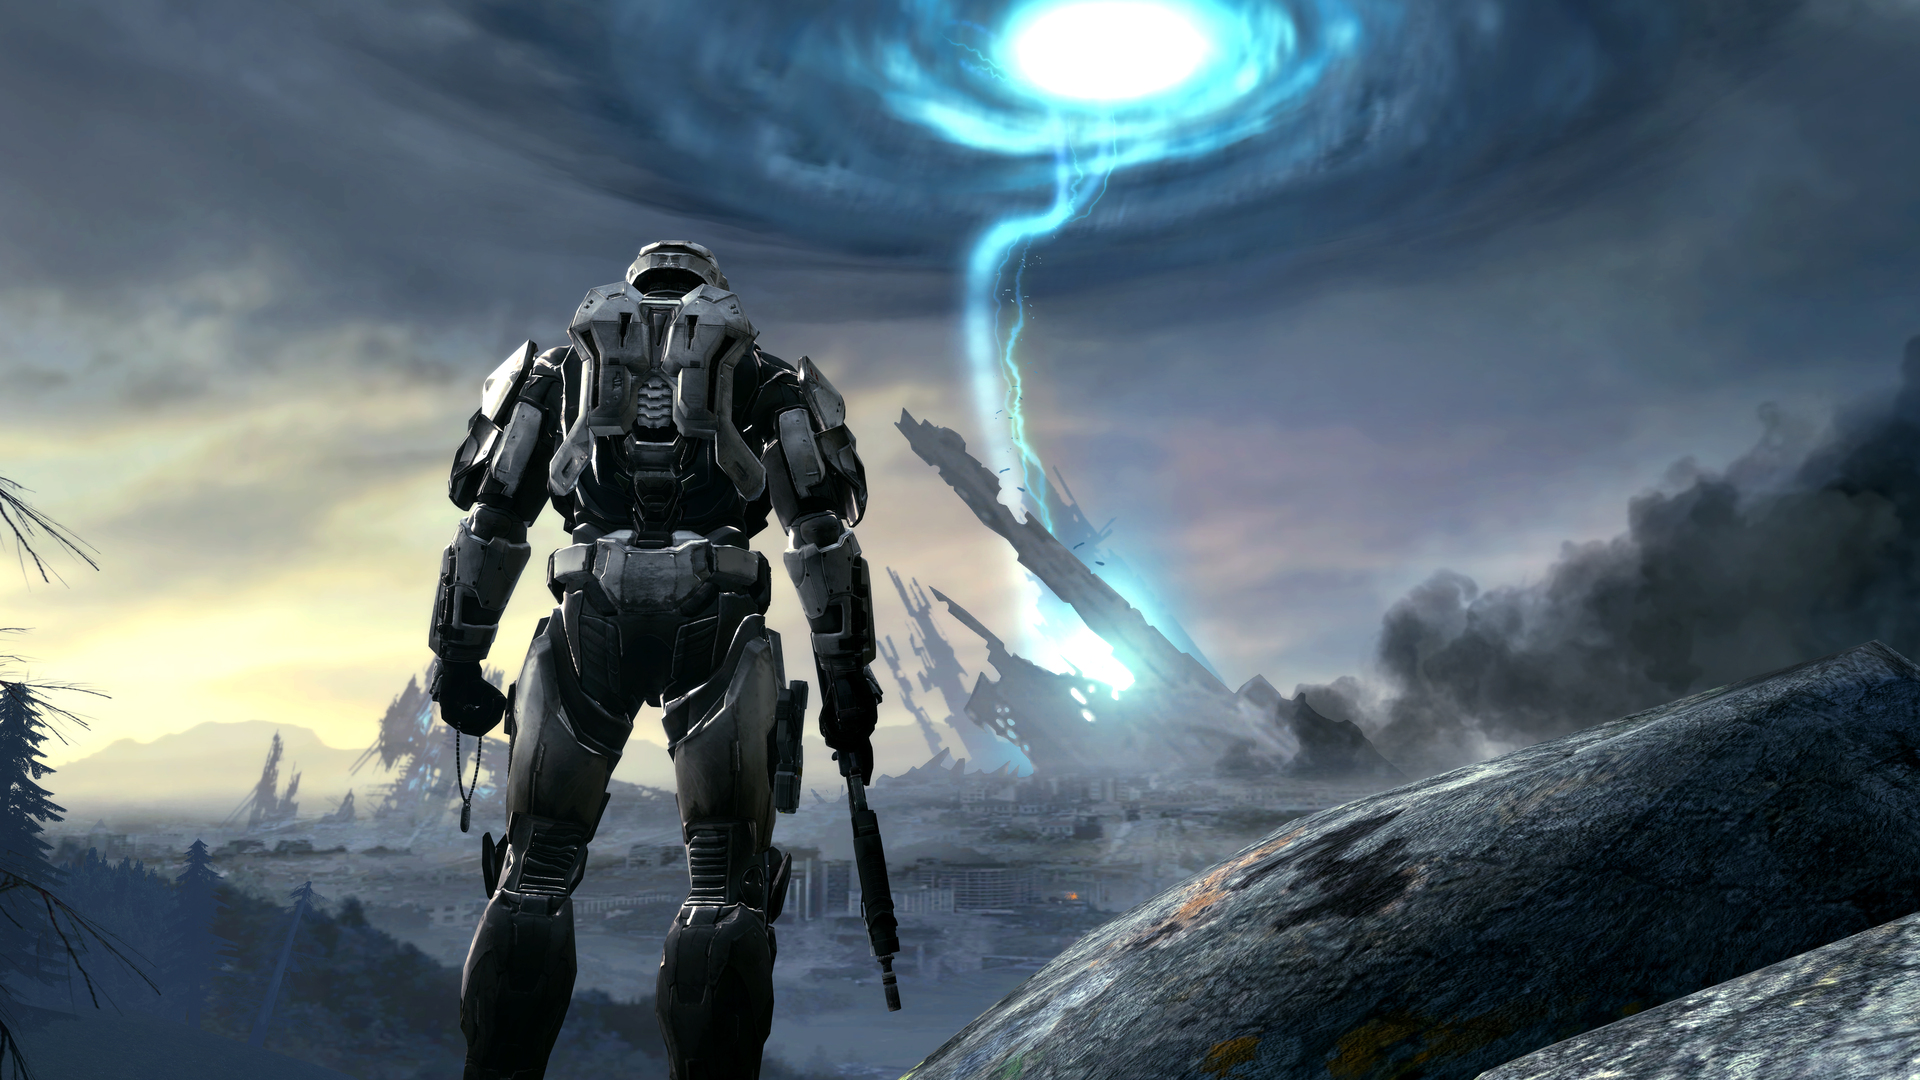 1920x1080 Halo Game Artwork In 4k Laptop Full Hd 1080p Hd 4k